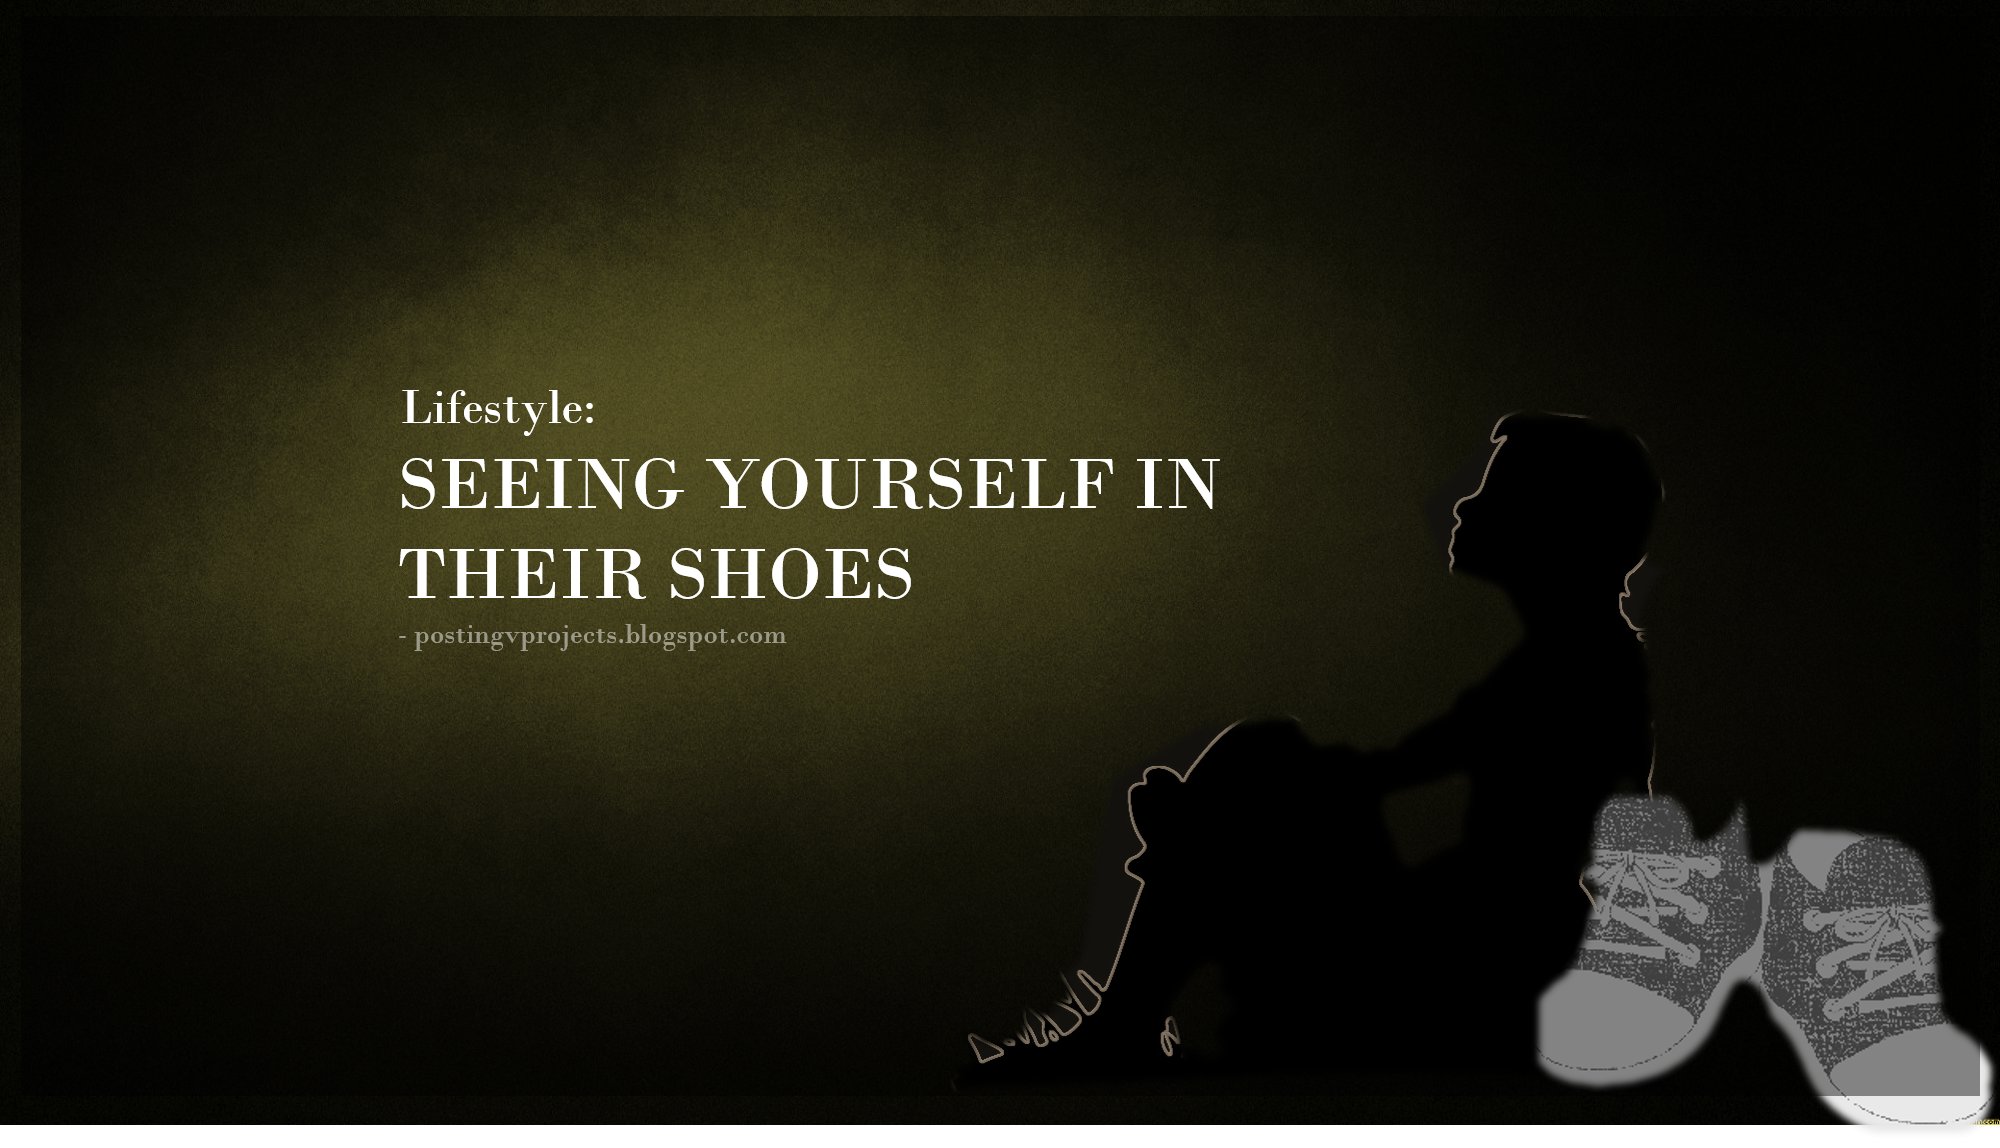 LIFESTYLE - SEEING YOURSELF IN THIER SHOES